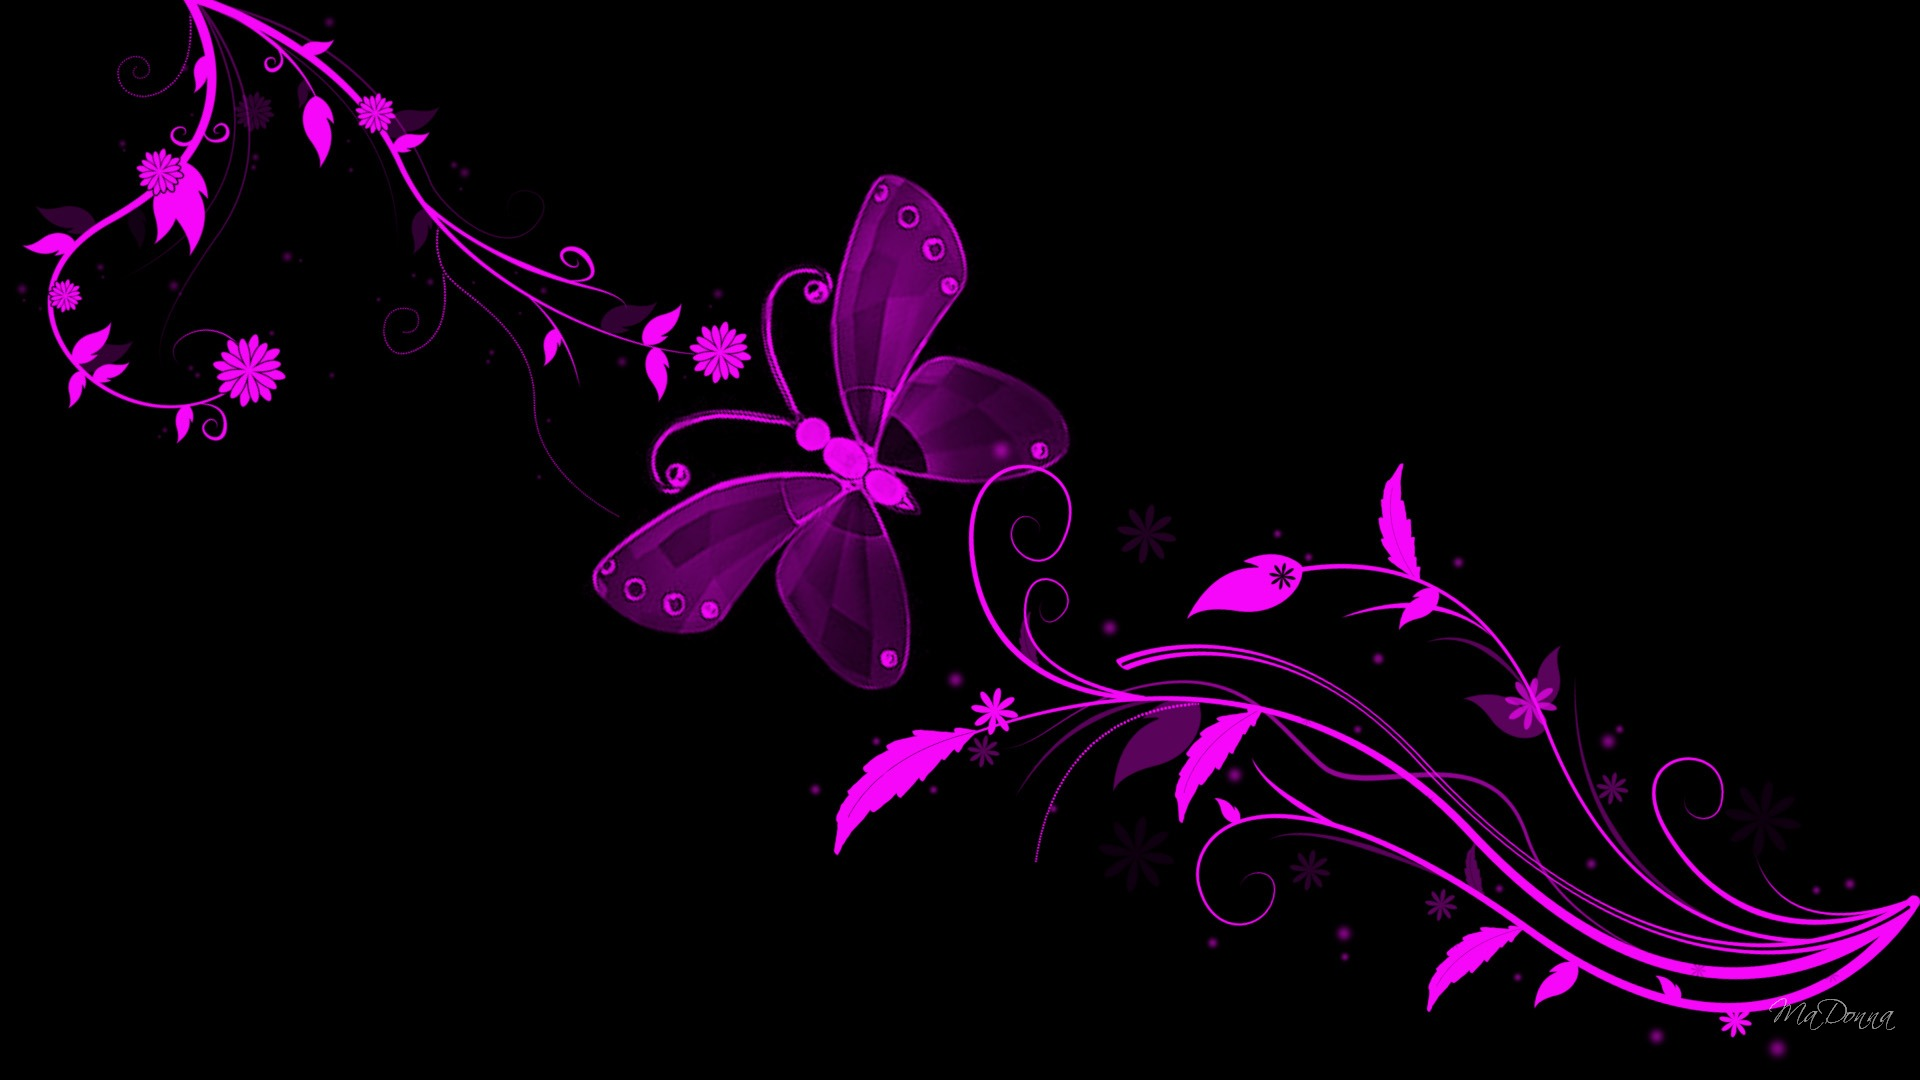 Butterfly-Download-Black-And-Pink-Butterfly-Flowers-Abstract-Bright-Butterfly-wallpaper-wp3403573